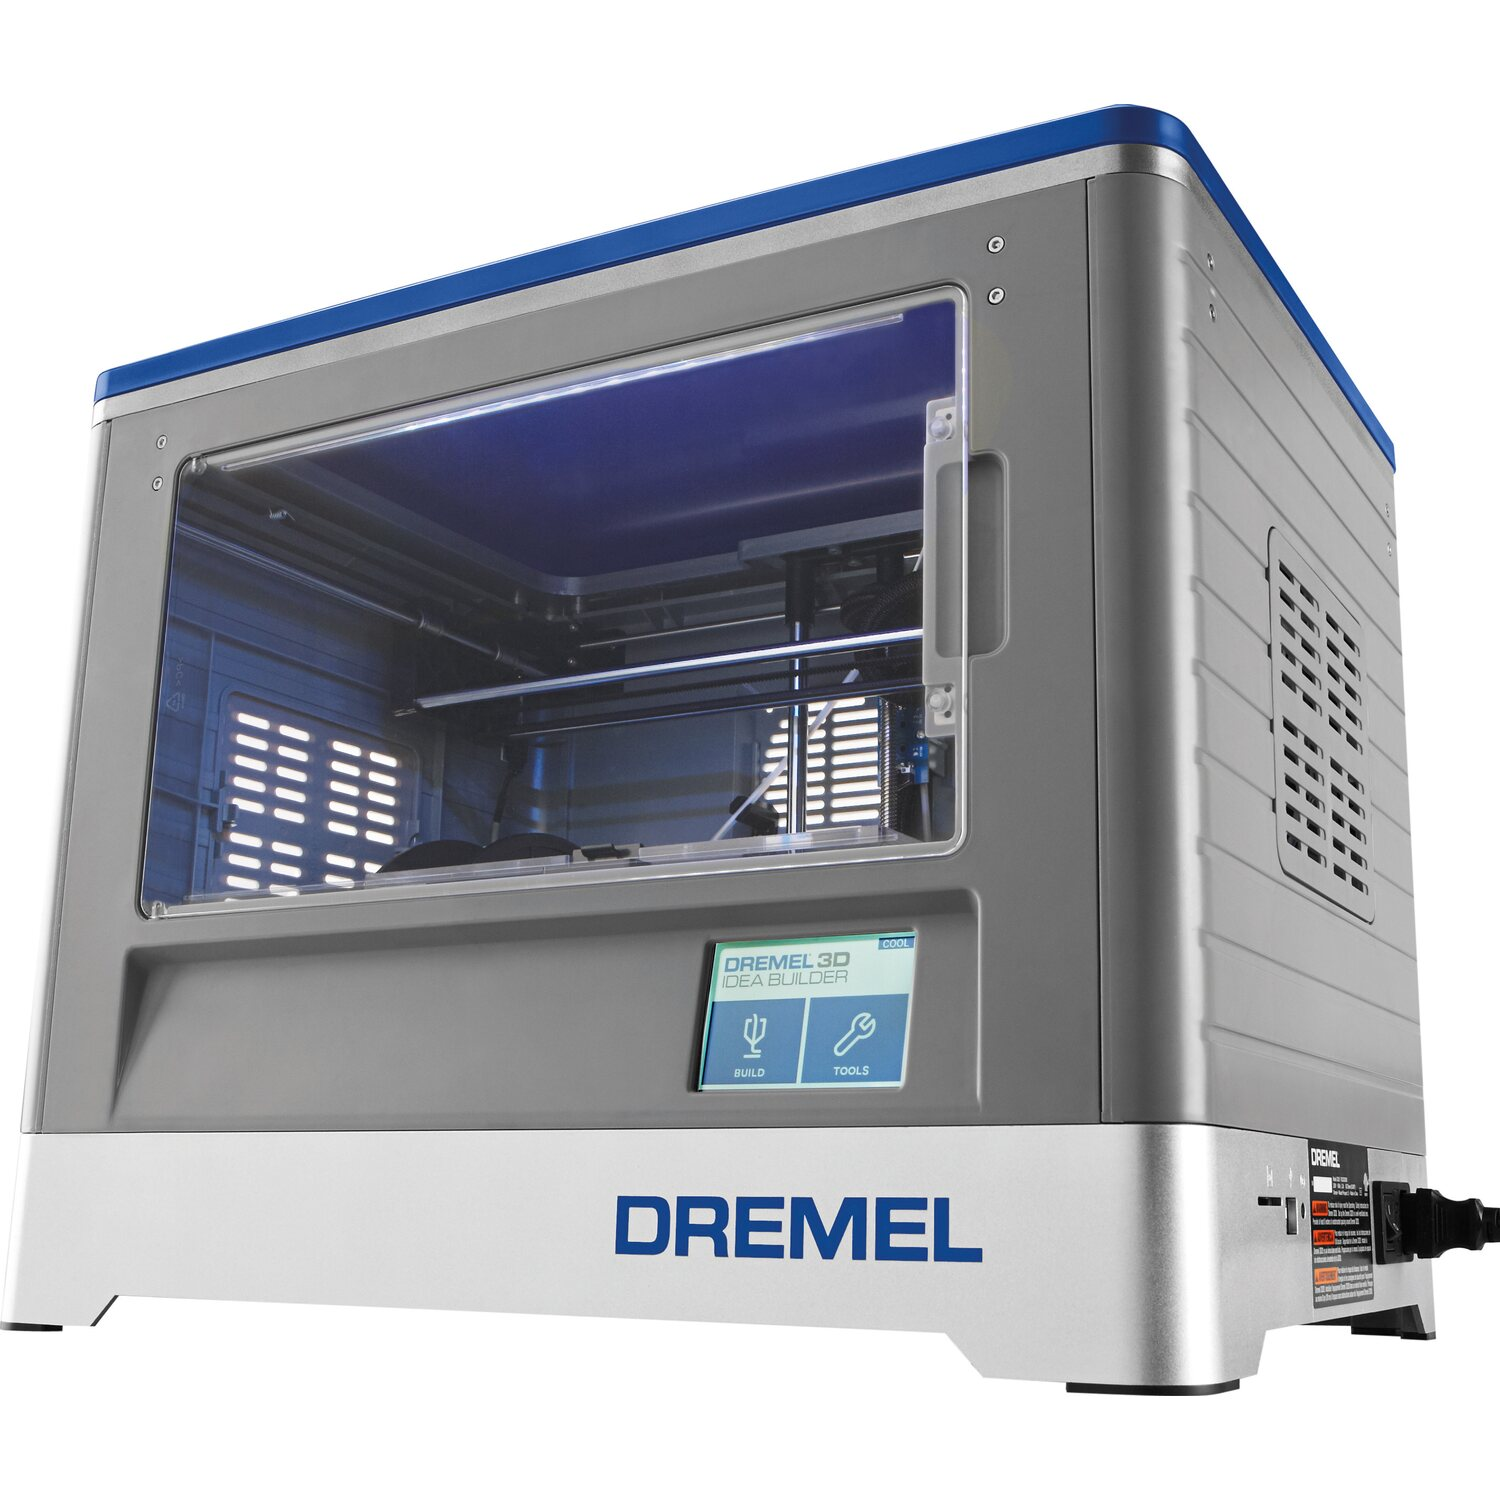 dremel 3d drucker idea builder 3d20 01 kaufen bei obi. Black Bedroom Furniture Sets. Home Design Ideas